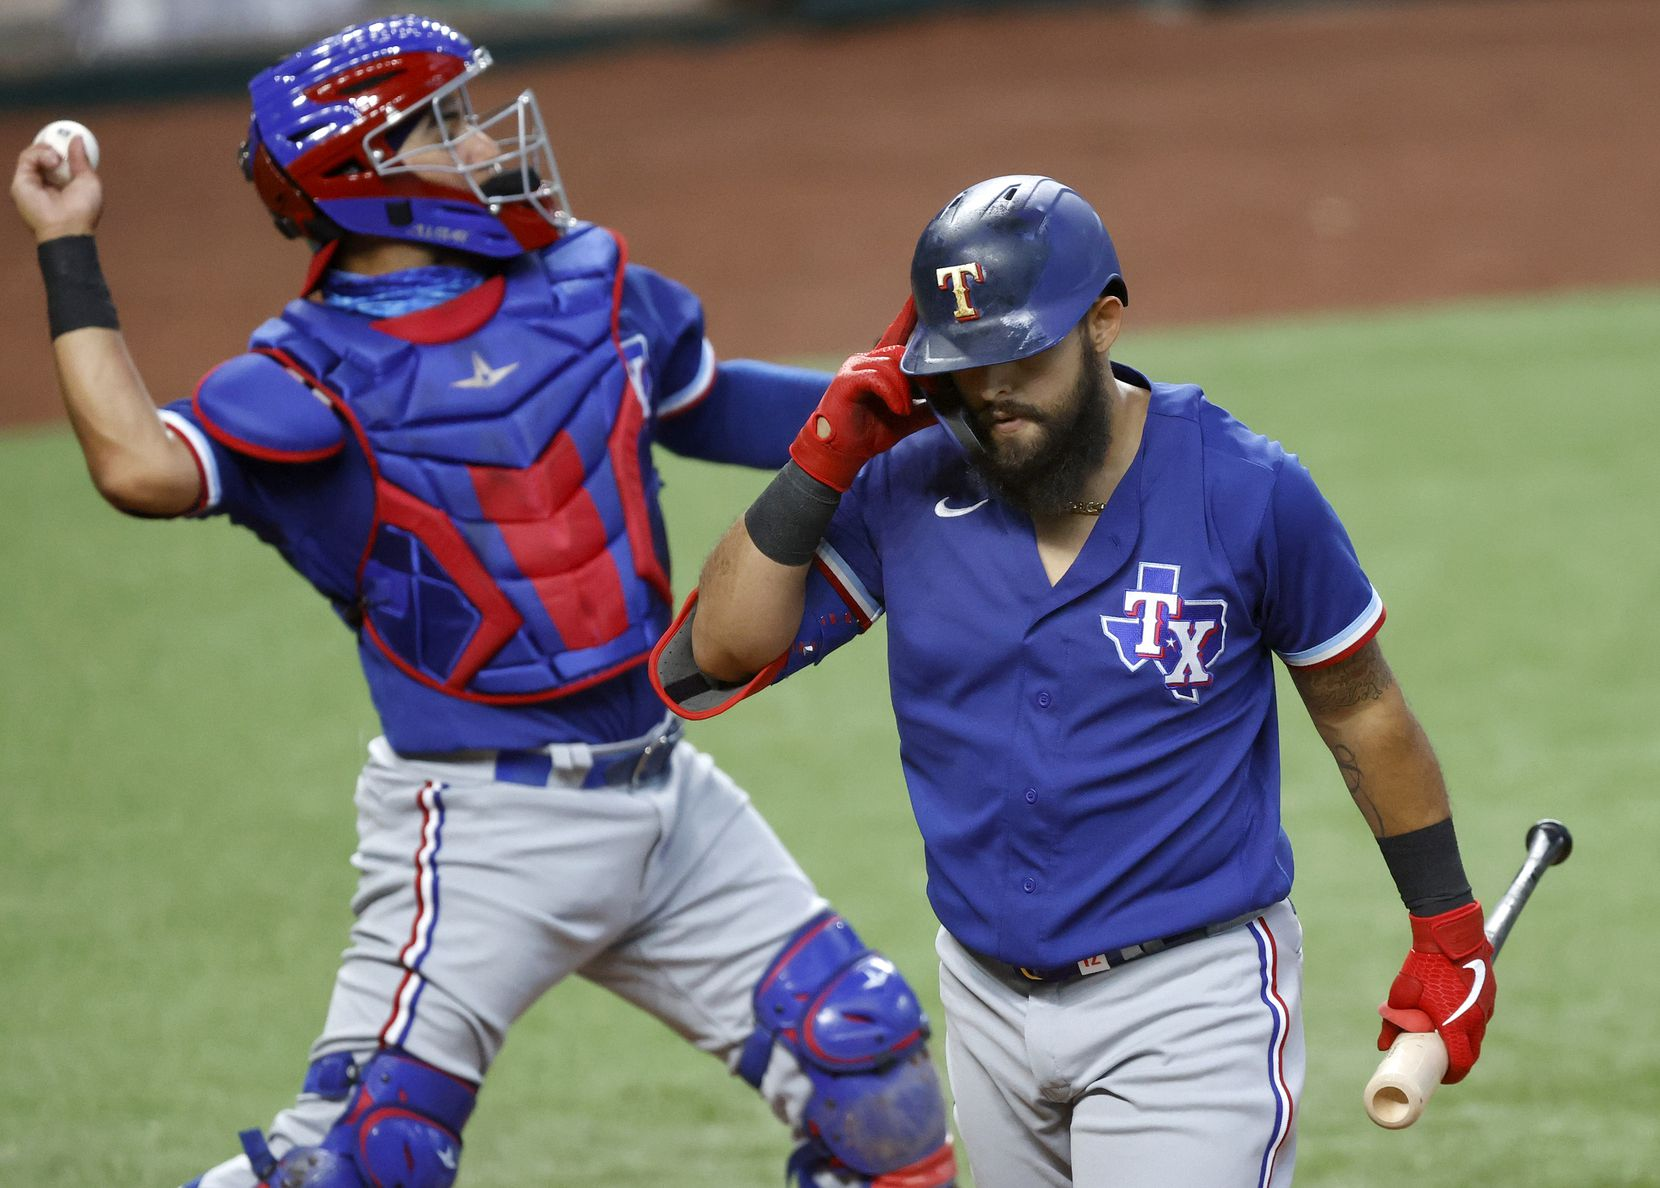 Texas Rangers batter Rougned Odor walks to the dugout after striking out during a simulated Summer Camp game inside Globe Life Field in Arlington, Texas, Thursday, July 9, 2020. (Tom Fox/The Dallas Morning News)